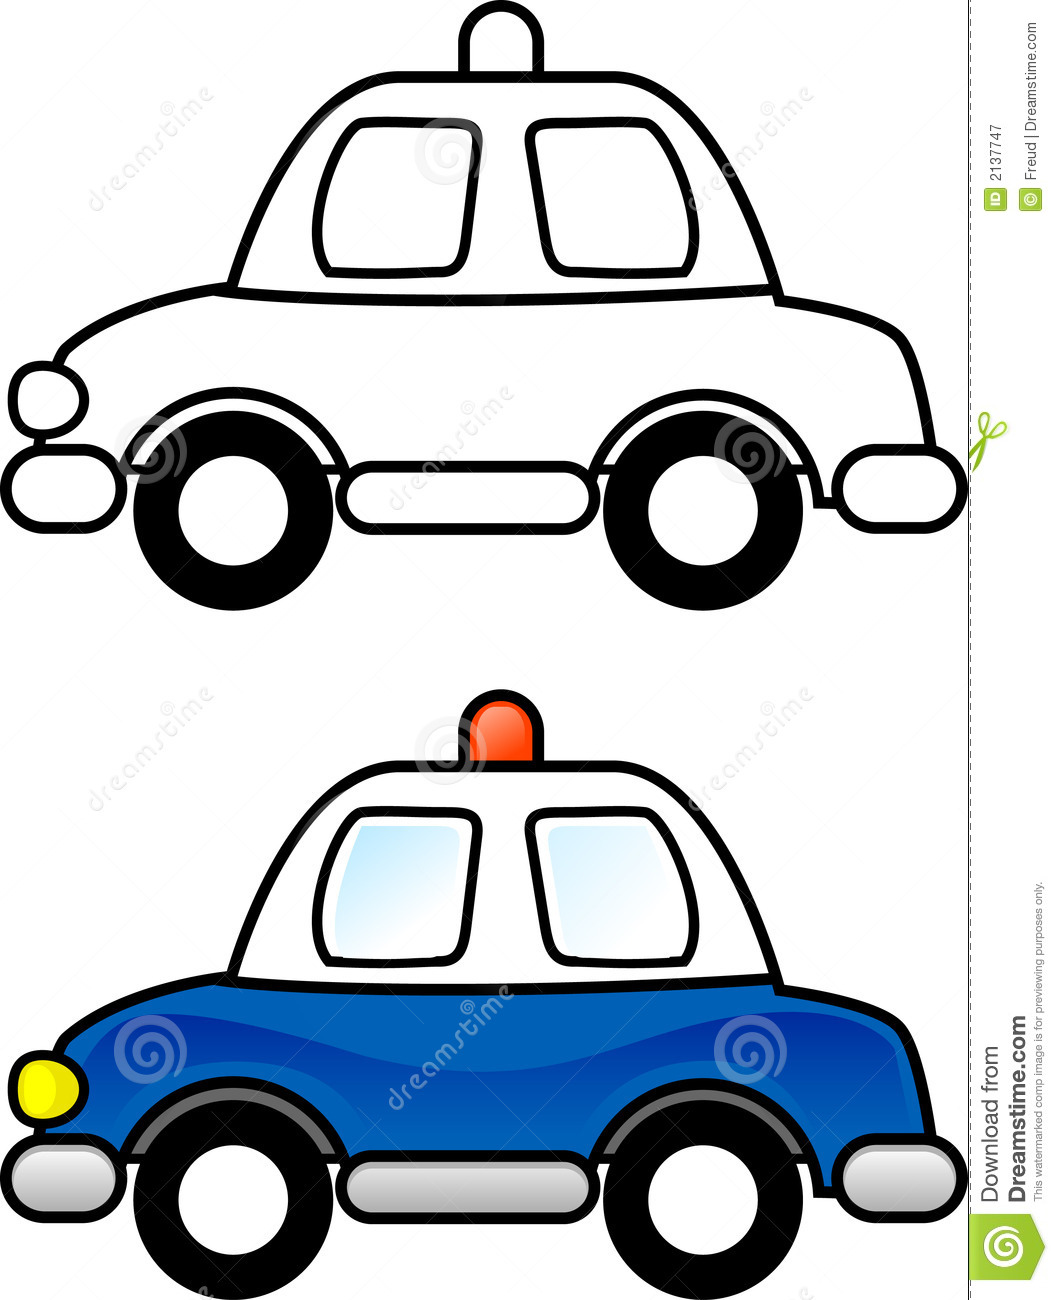 Clipart police car outline image royalty free library Police Car Clipart | Clipart Panda - Free Clipart Images image royalty free library